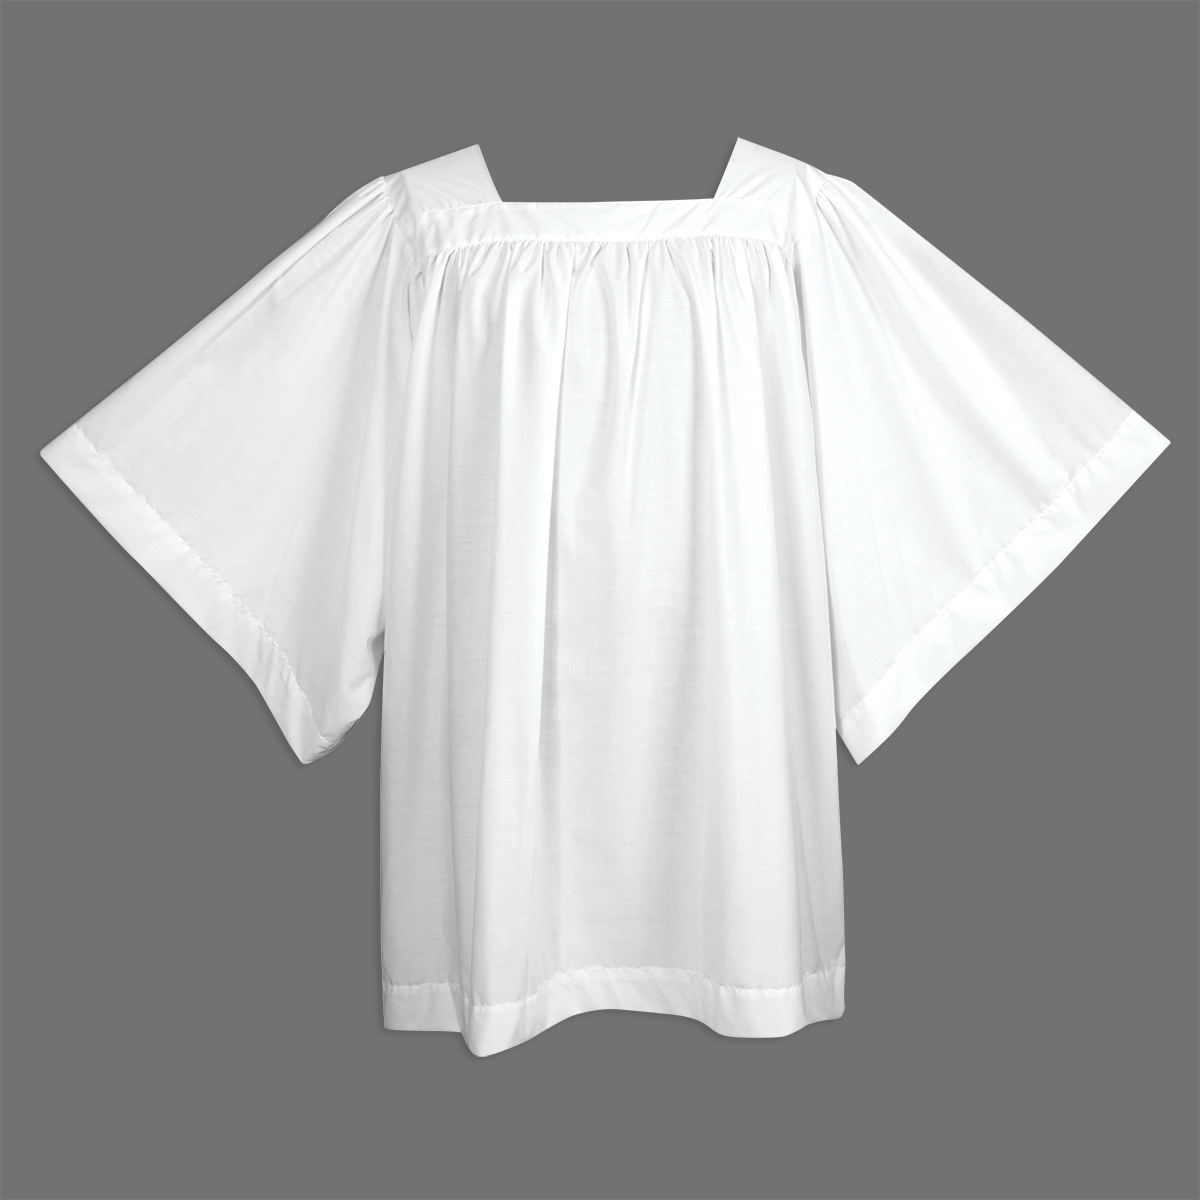 Square Yoke Surplice for Altar Servers | Style 113 | Abbey Brand